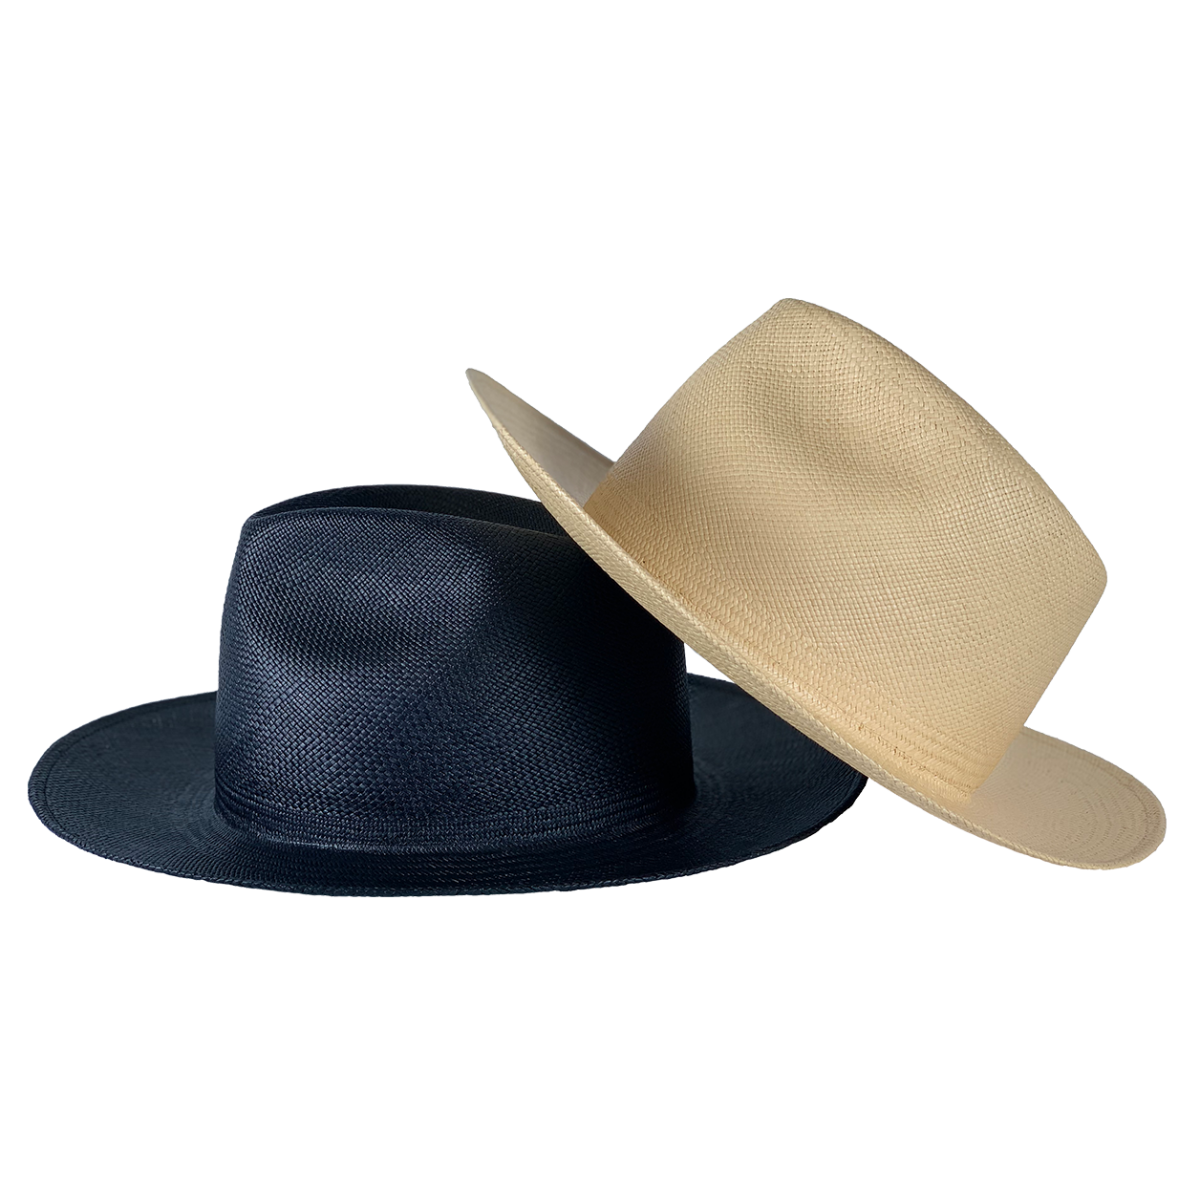 <img class='new_mark_img1' src='https://img.shop-pro.jp/img/new/icons1.gif' style='border:none;display:inline;margin:0px;padding:0px;width:auto;' />CLASSIC PANAMA HAT SOLID